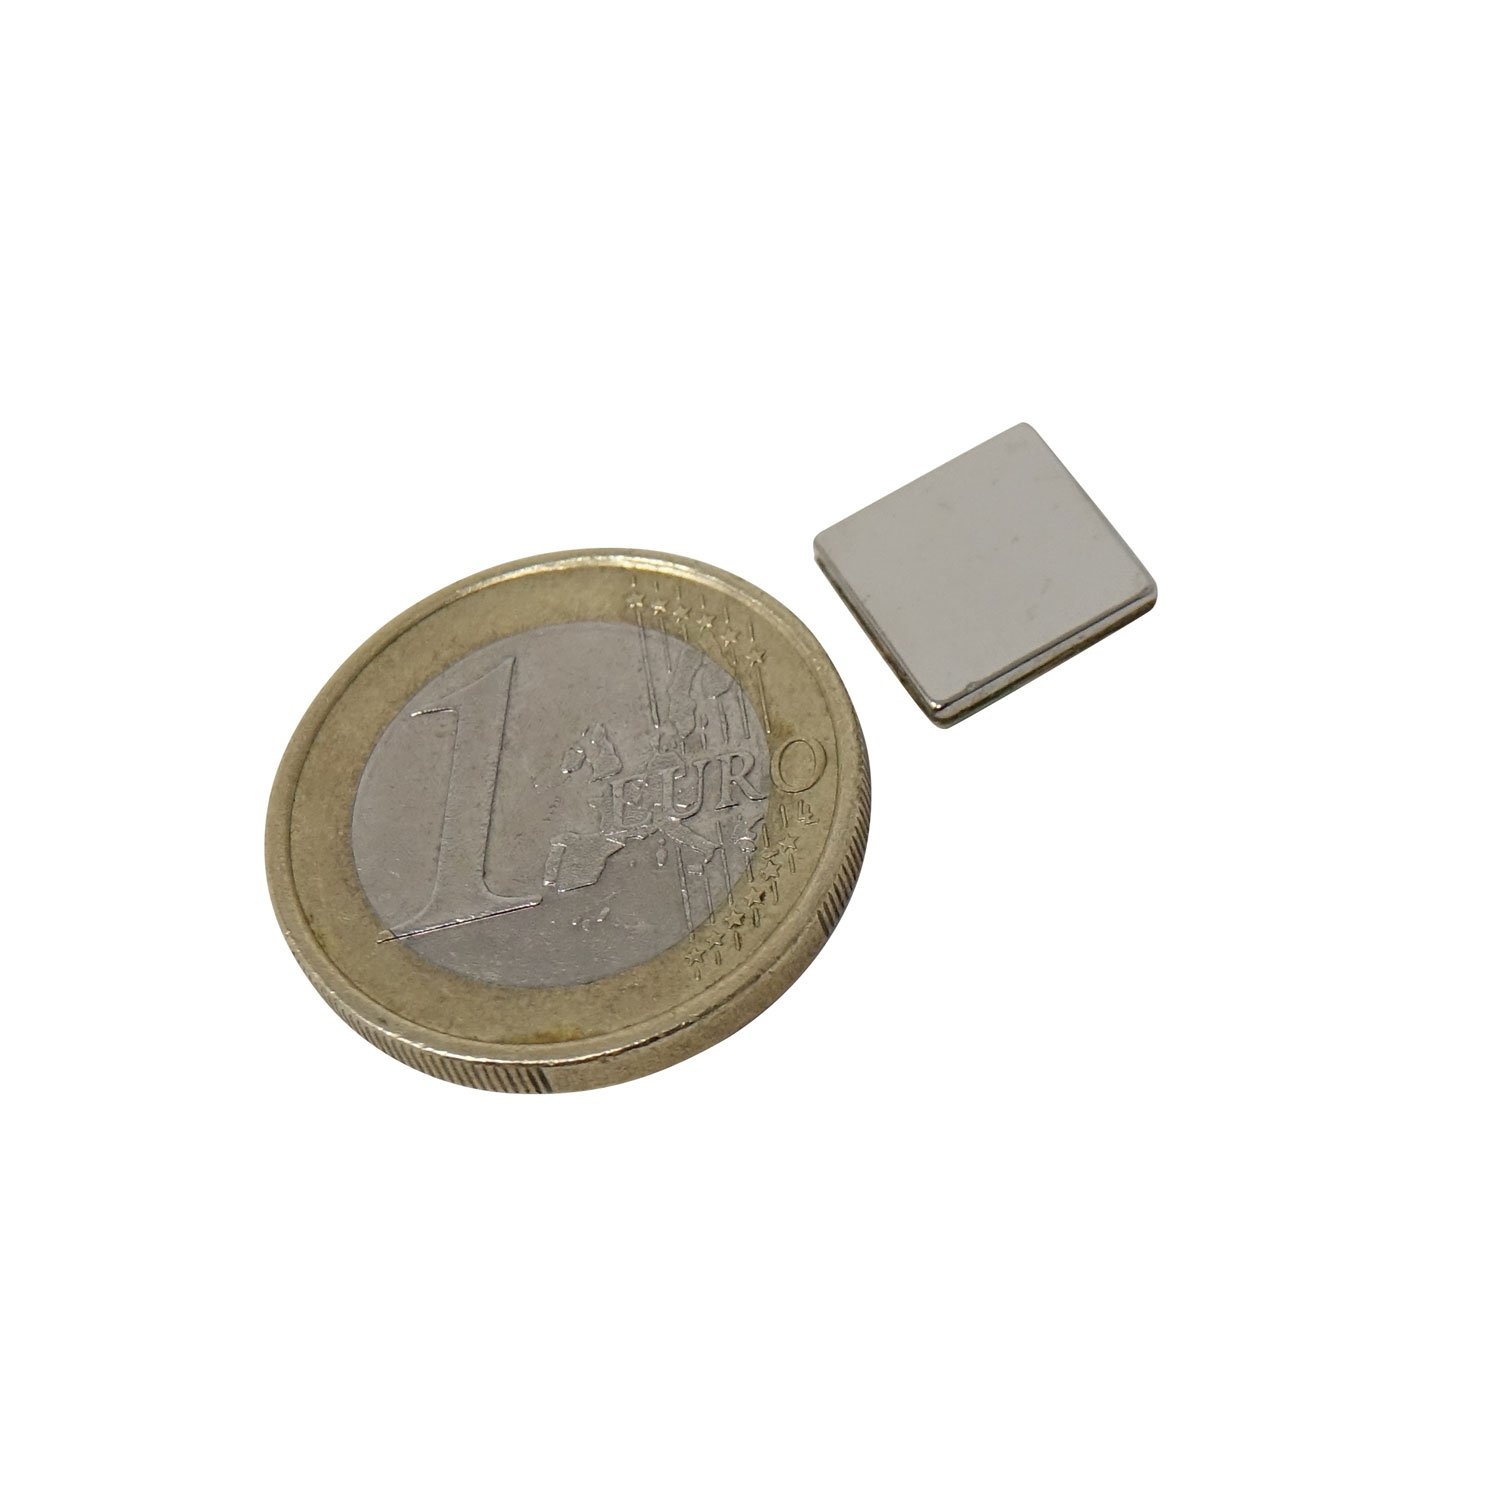 MagnetMate 5 Neodymium Disc Magnets Extra Strong Magnetisation N52 Permanent Magnets 20 x 5 mm Extremely High Holding Force//Office//Fridge//Whiteboard//Presentation//Kitchen